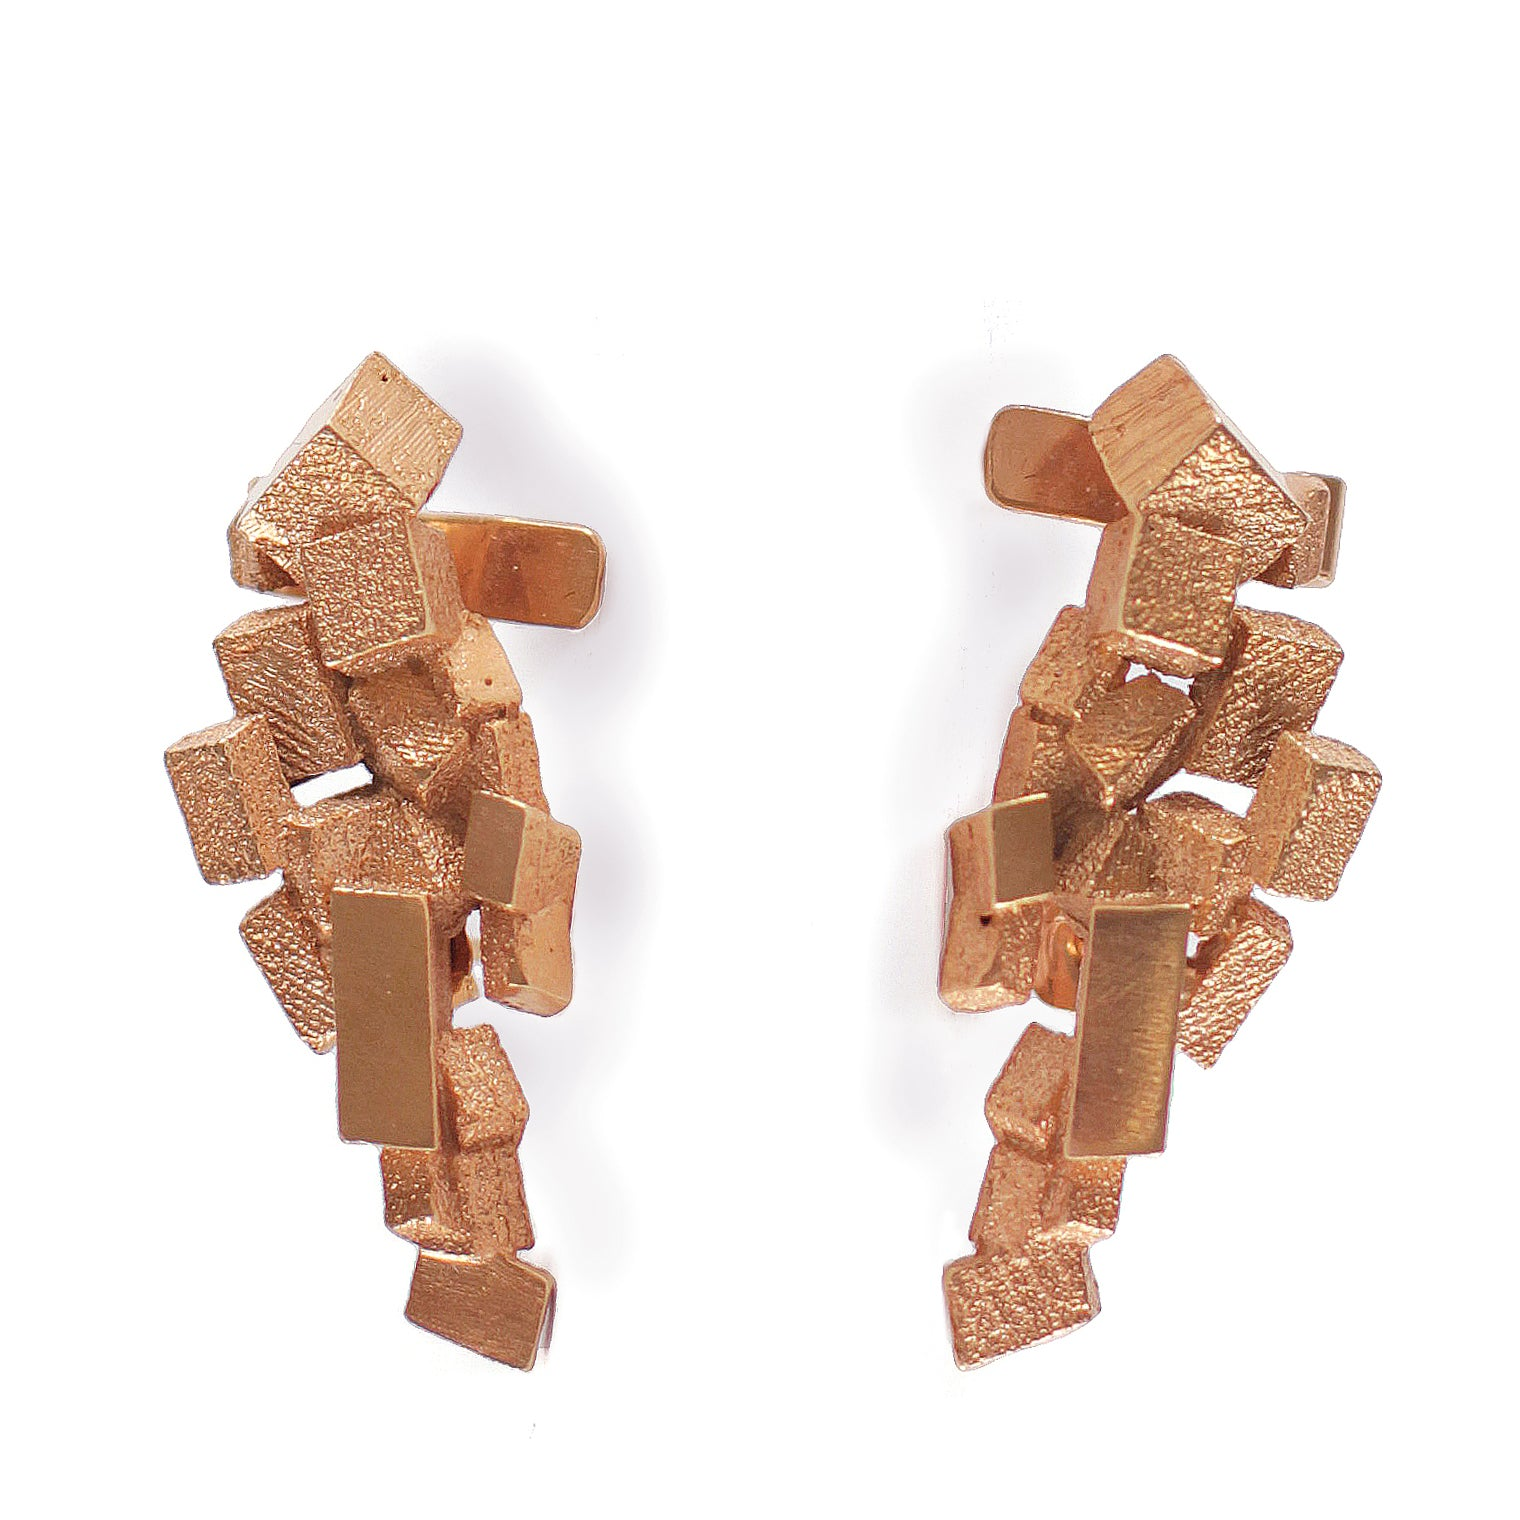 Stud & Cuff Earrings CB-012-R by Kathia Bucho - Art Jewellery Store: Song of Jewellery